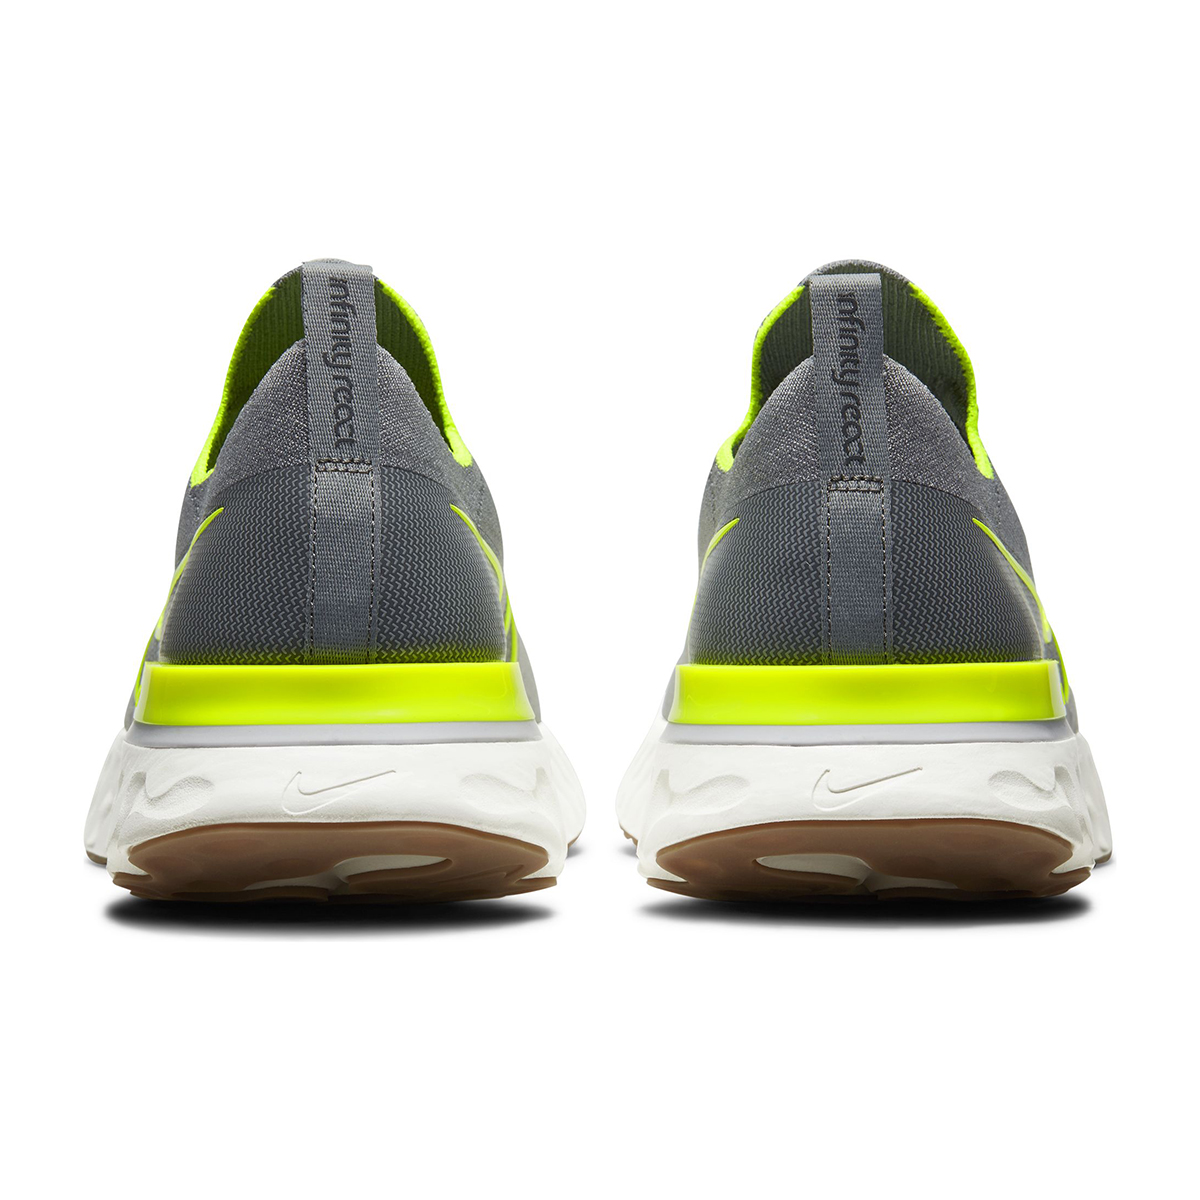 Men's Nike React Infinity Run Flyknit Running Shoe - Color: Particle Grey/Wolf Grey/Sail/Volt (Regular Width) - Size: 6, Particle Grey/Wolf Grey/Sail/Volt, large, image 3